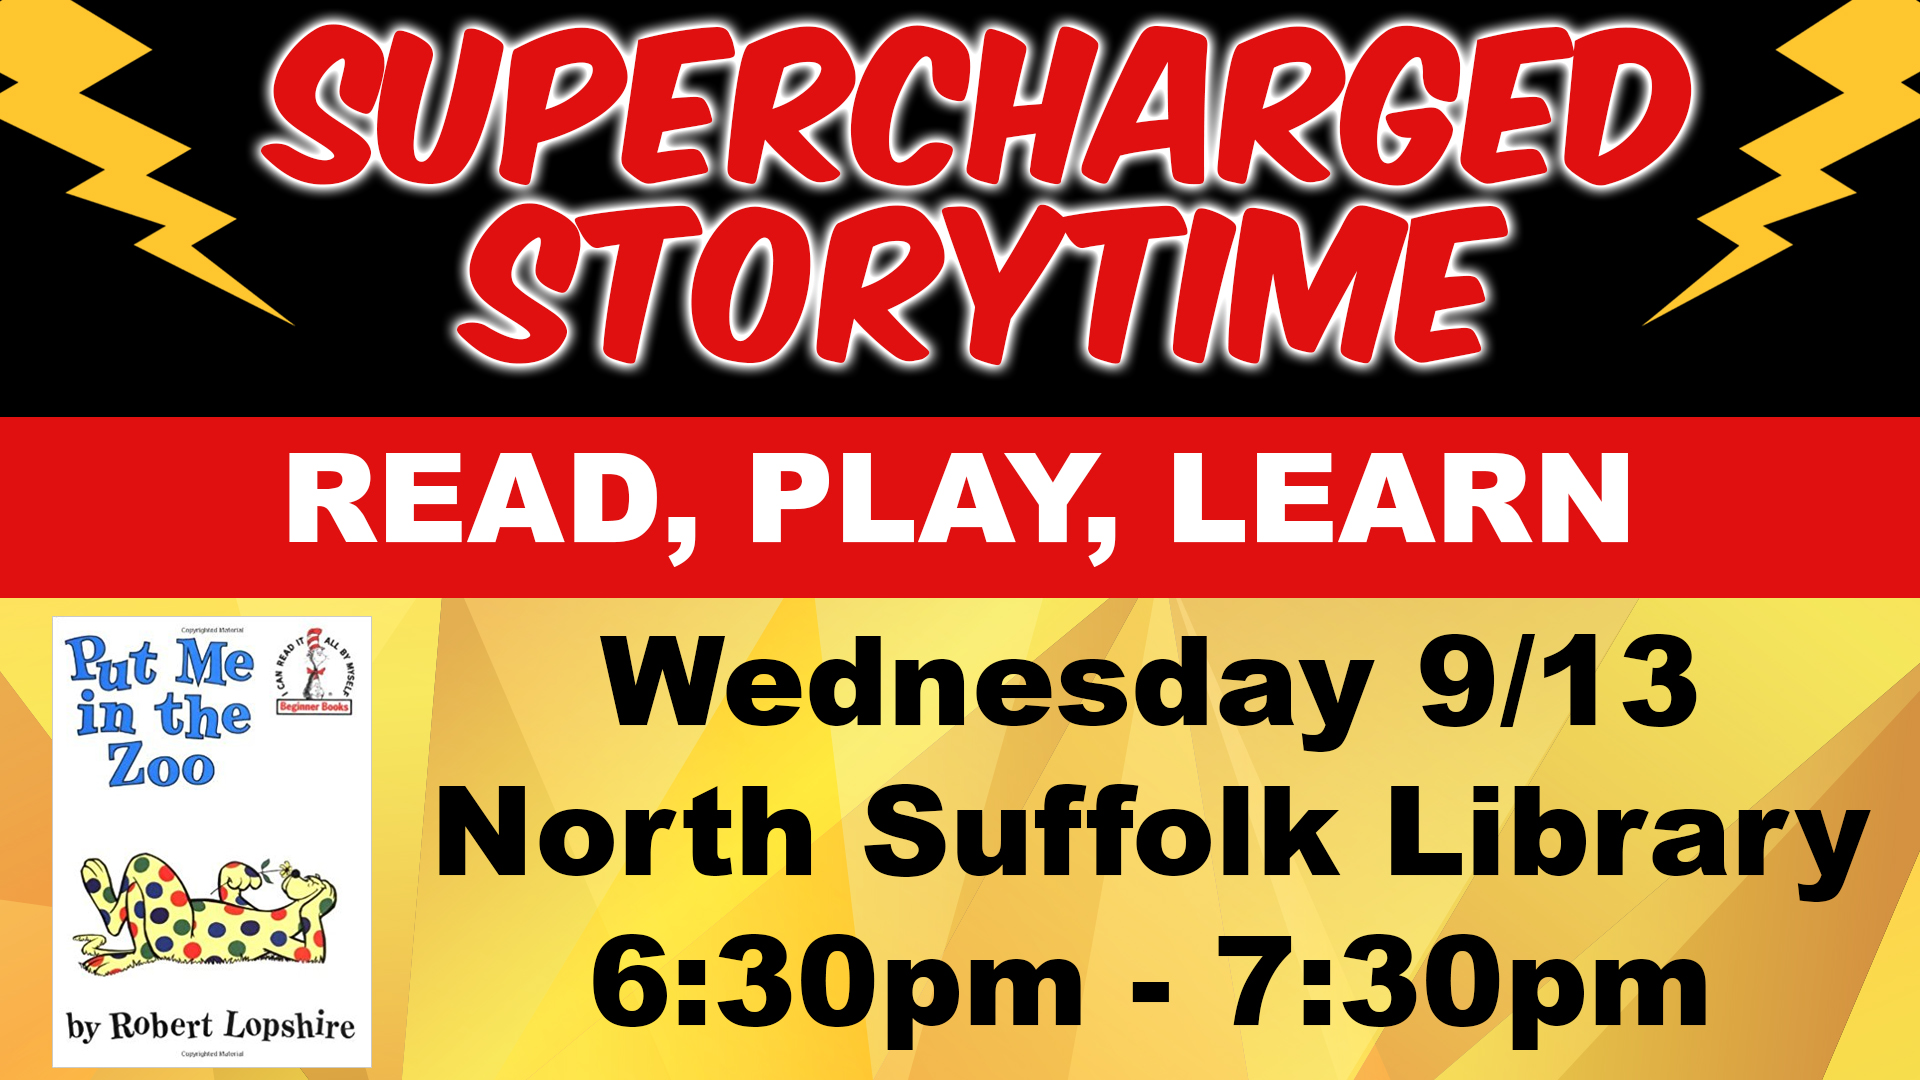 Supercharged Storytime